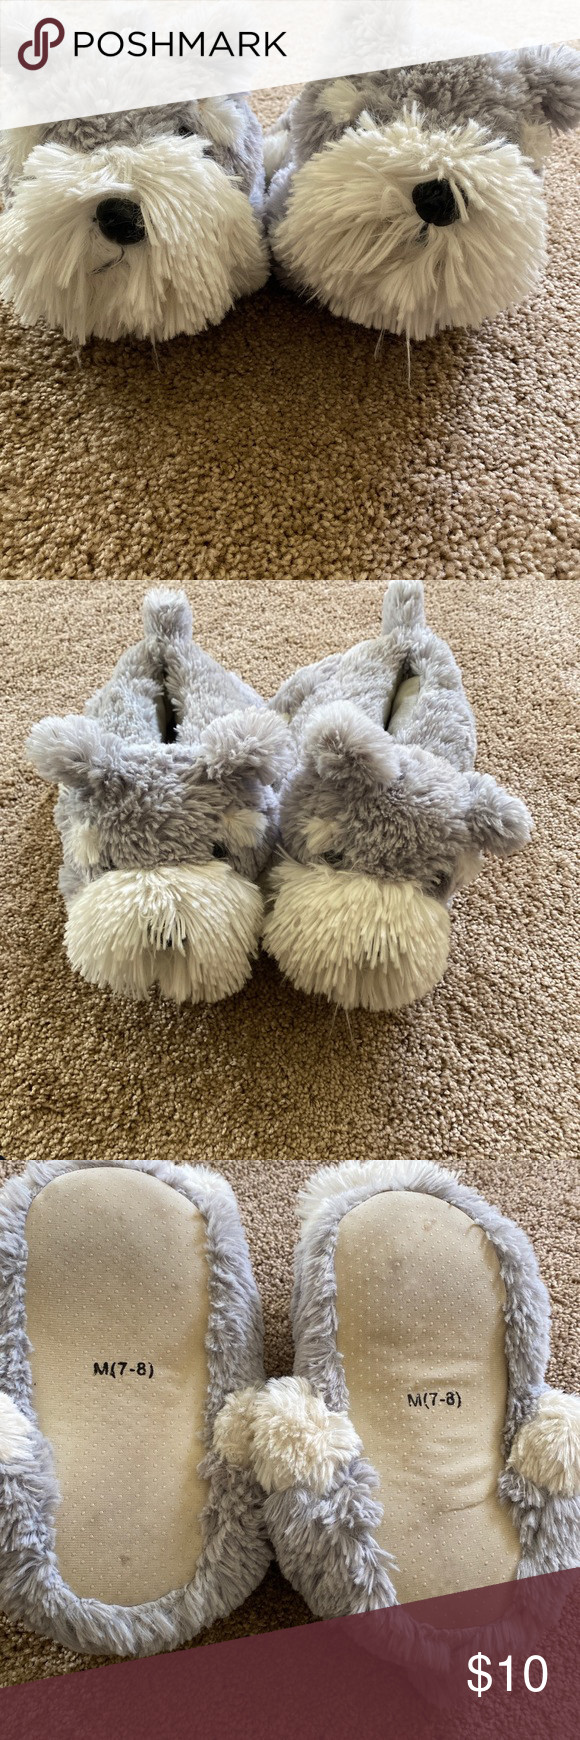 Fuzzy Slippers Size 7 8 Fuzzy Slippers Size 7 8 Shoes